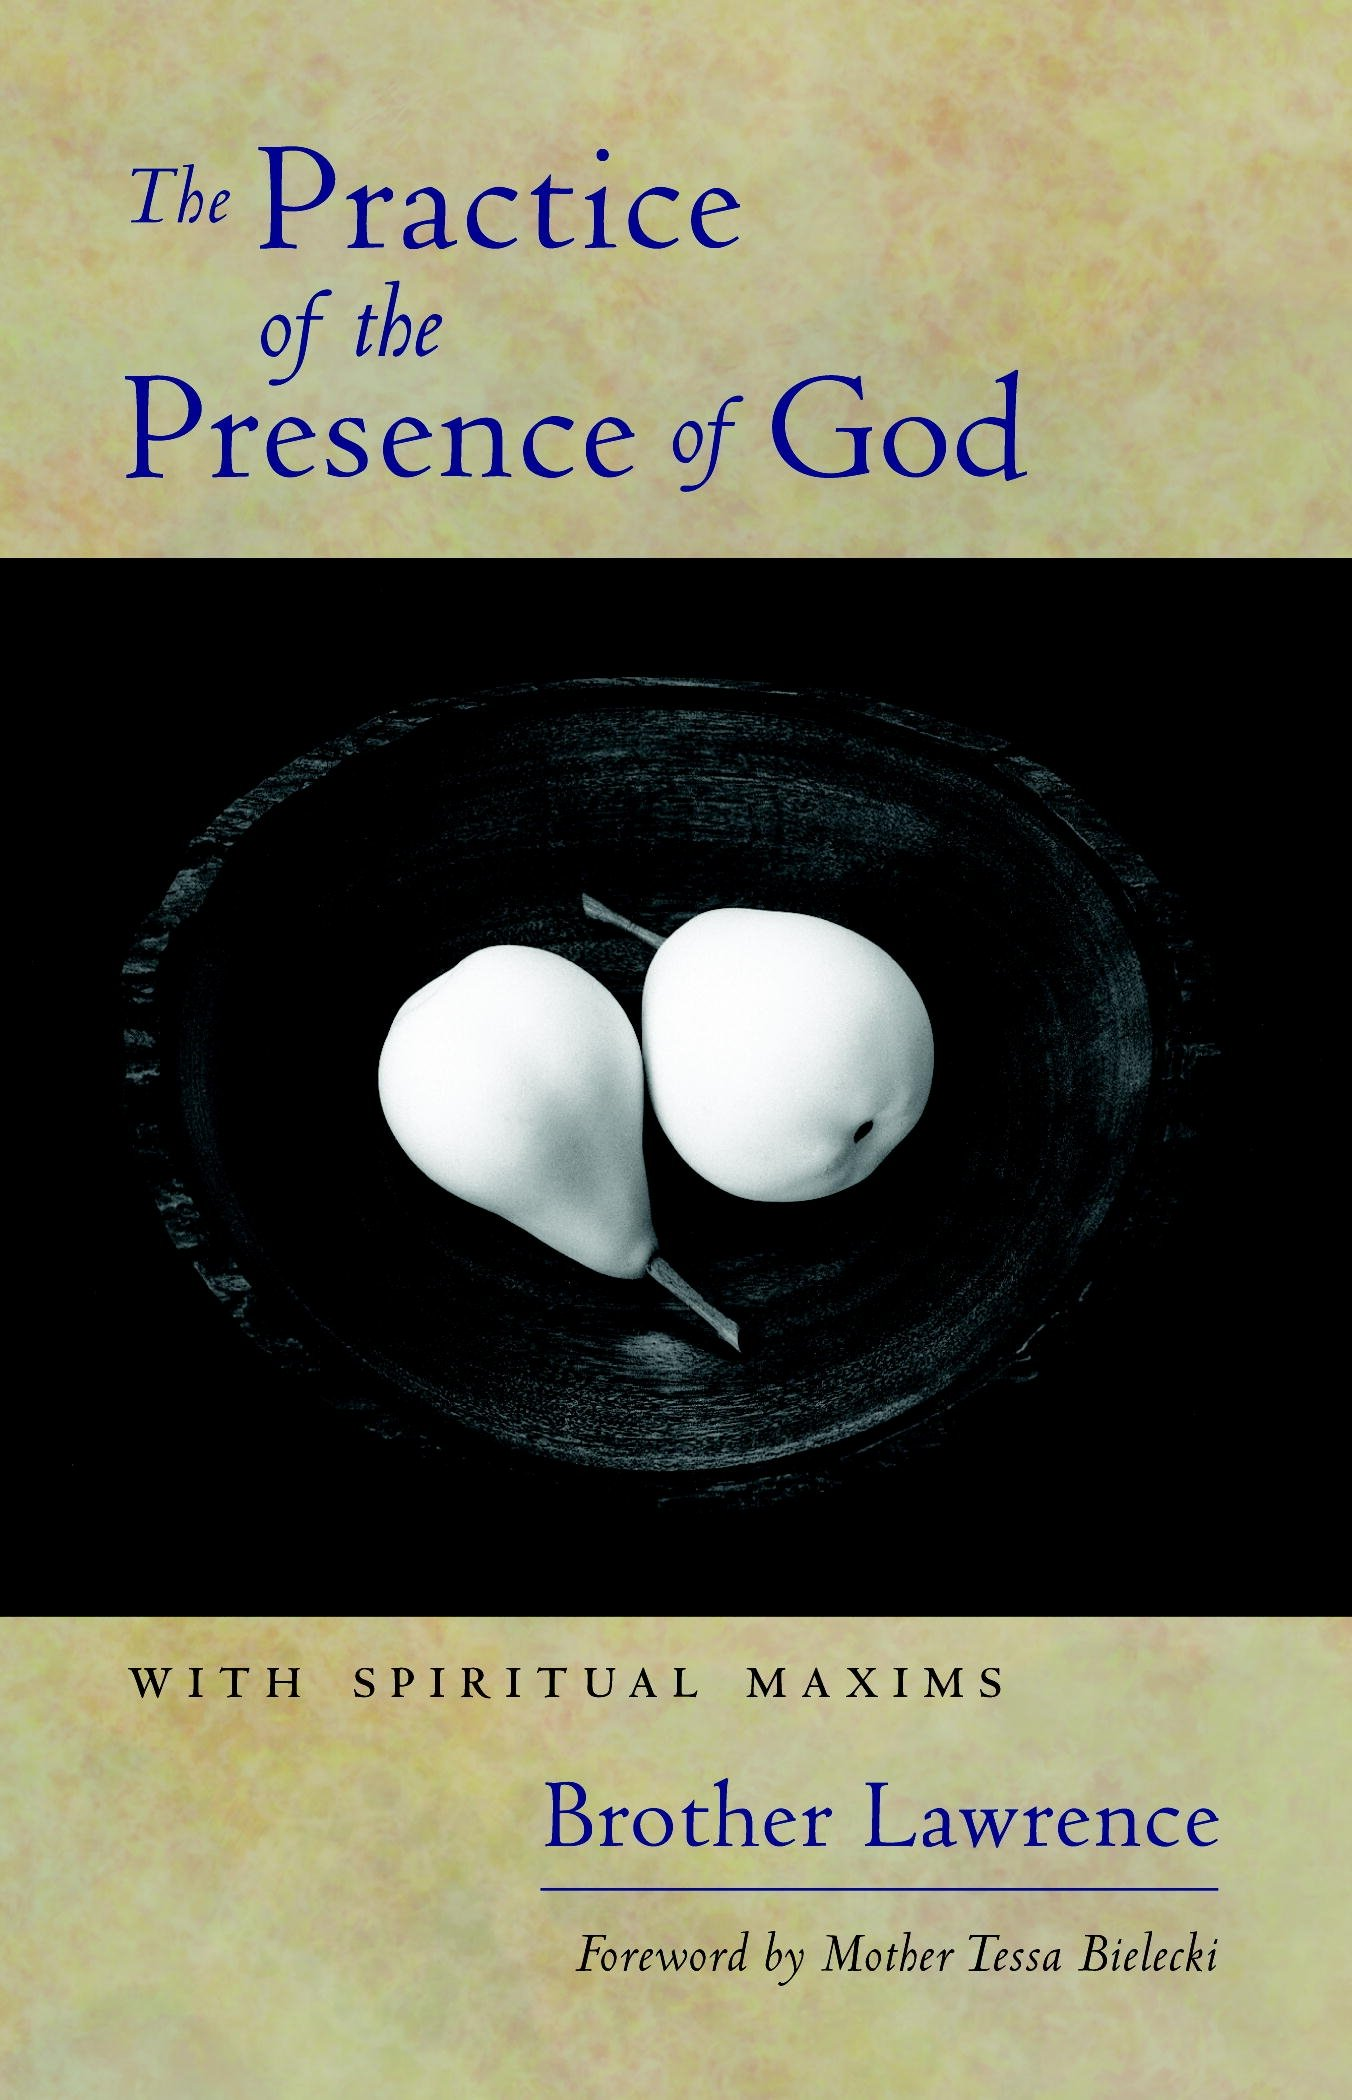 the practice of the presence of god book cover